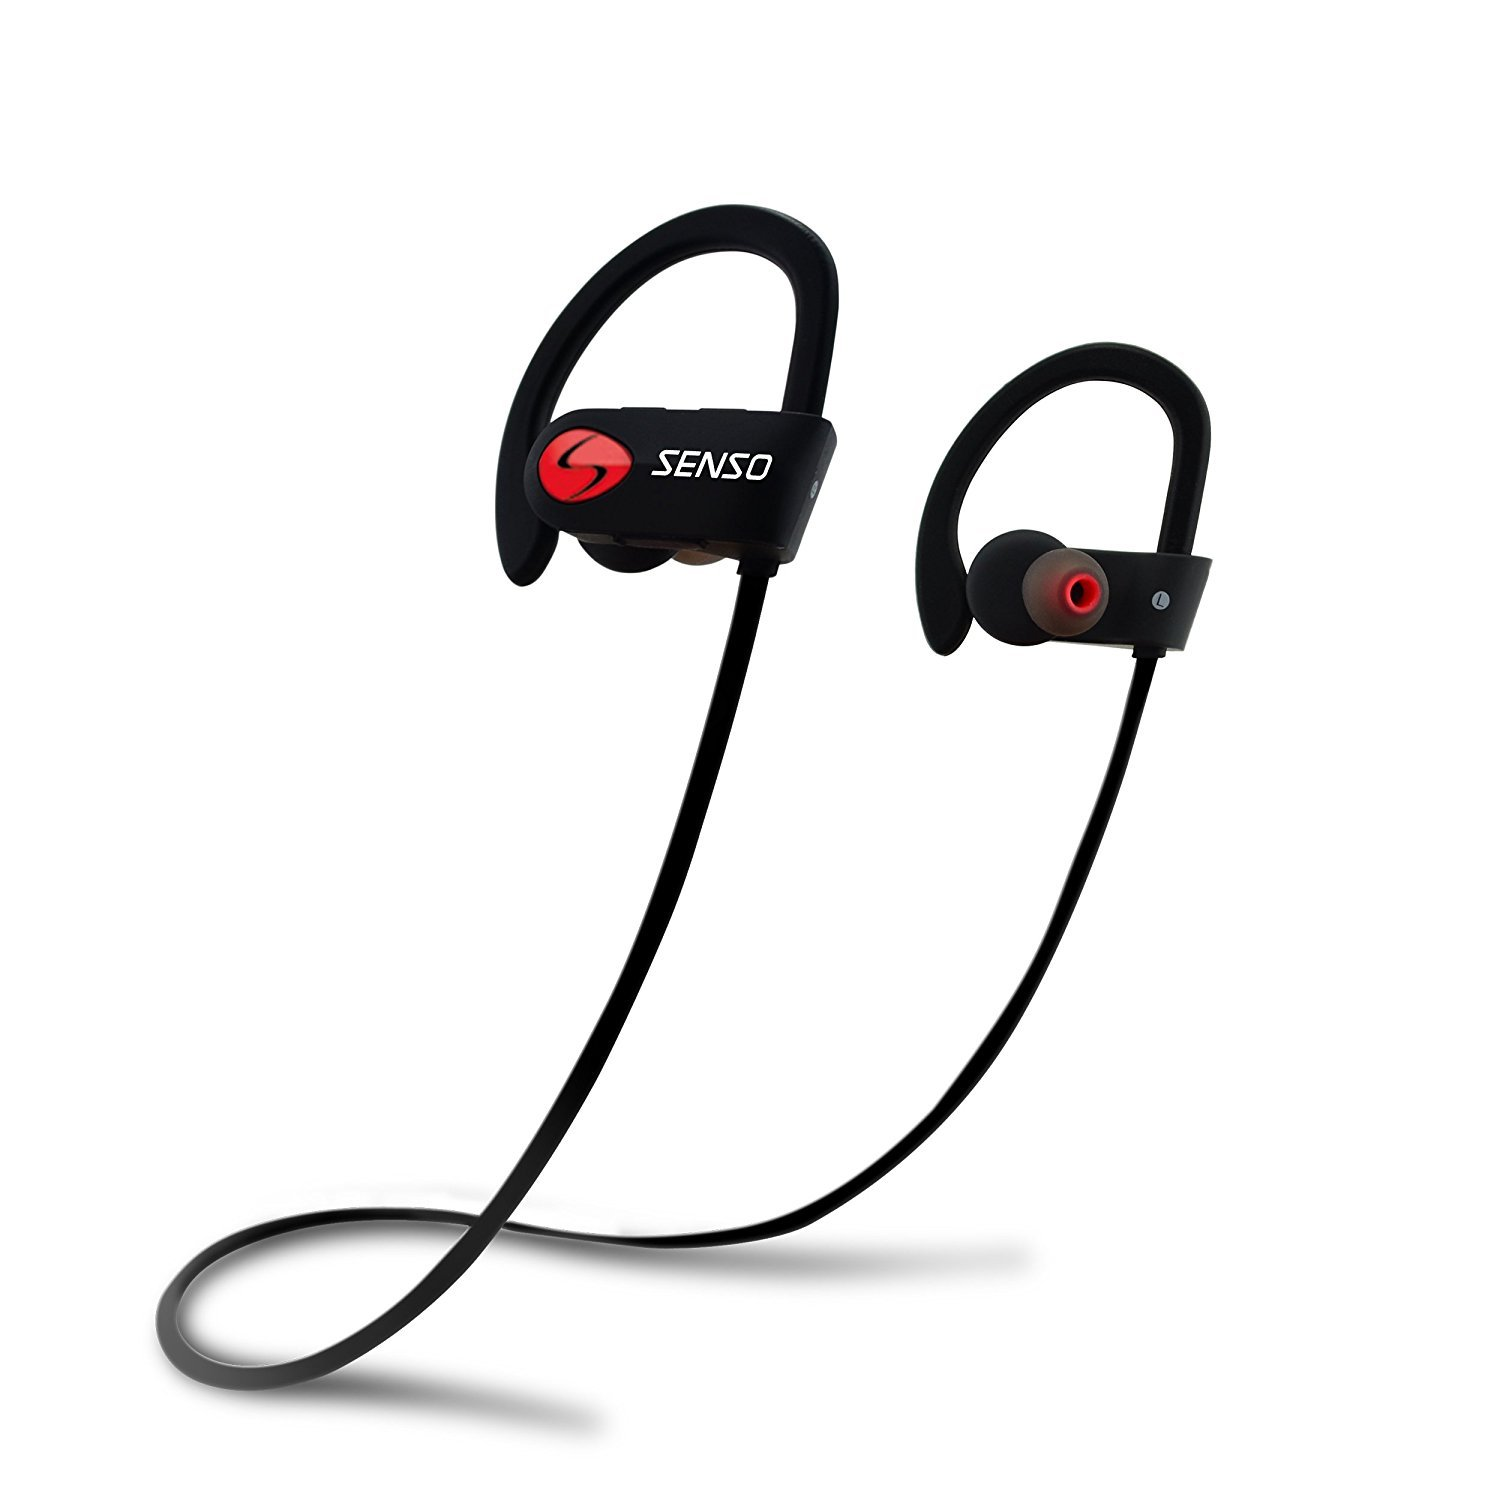 SENSO Bluetooth Headphones  Best Wireless Sports Earphones w Mic IPX7 Waterproof HD Stereo Sweatproof Earbuds for Gym Running Workout 8 Hour Battery Noise Cancelling Headsets